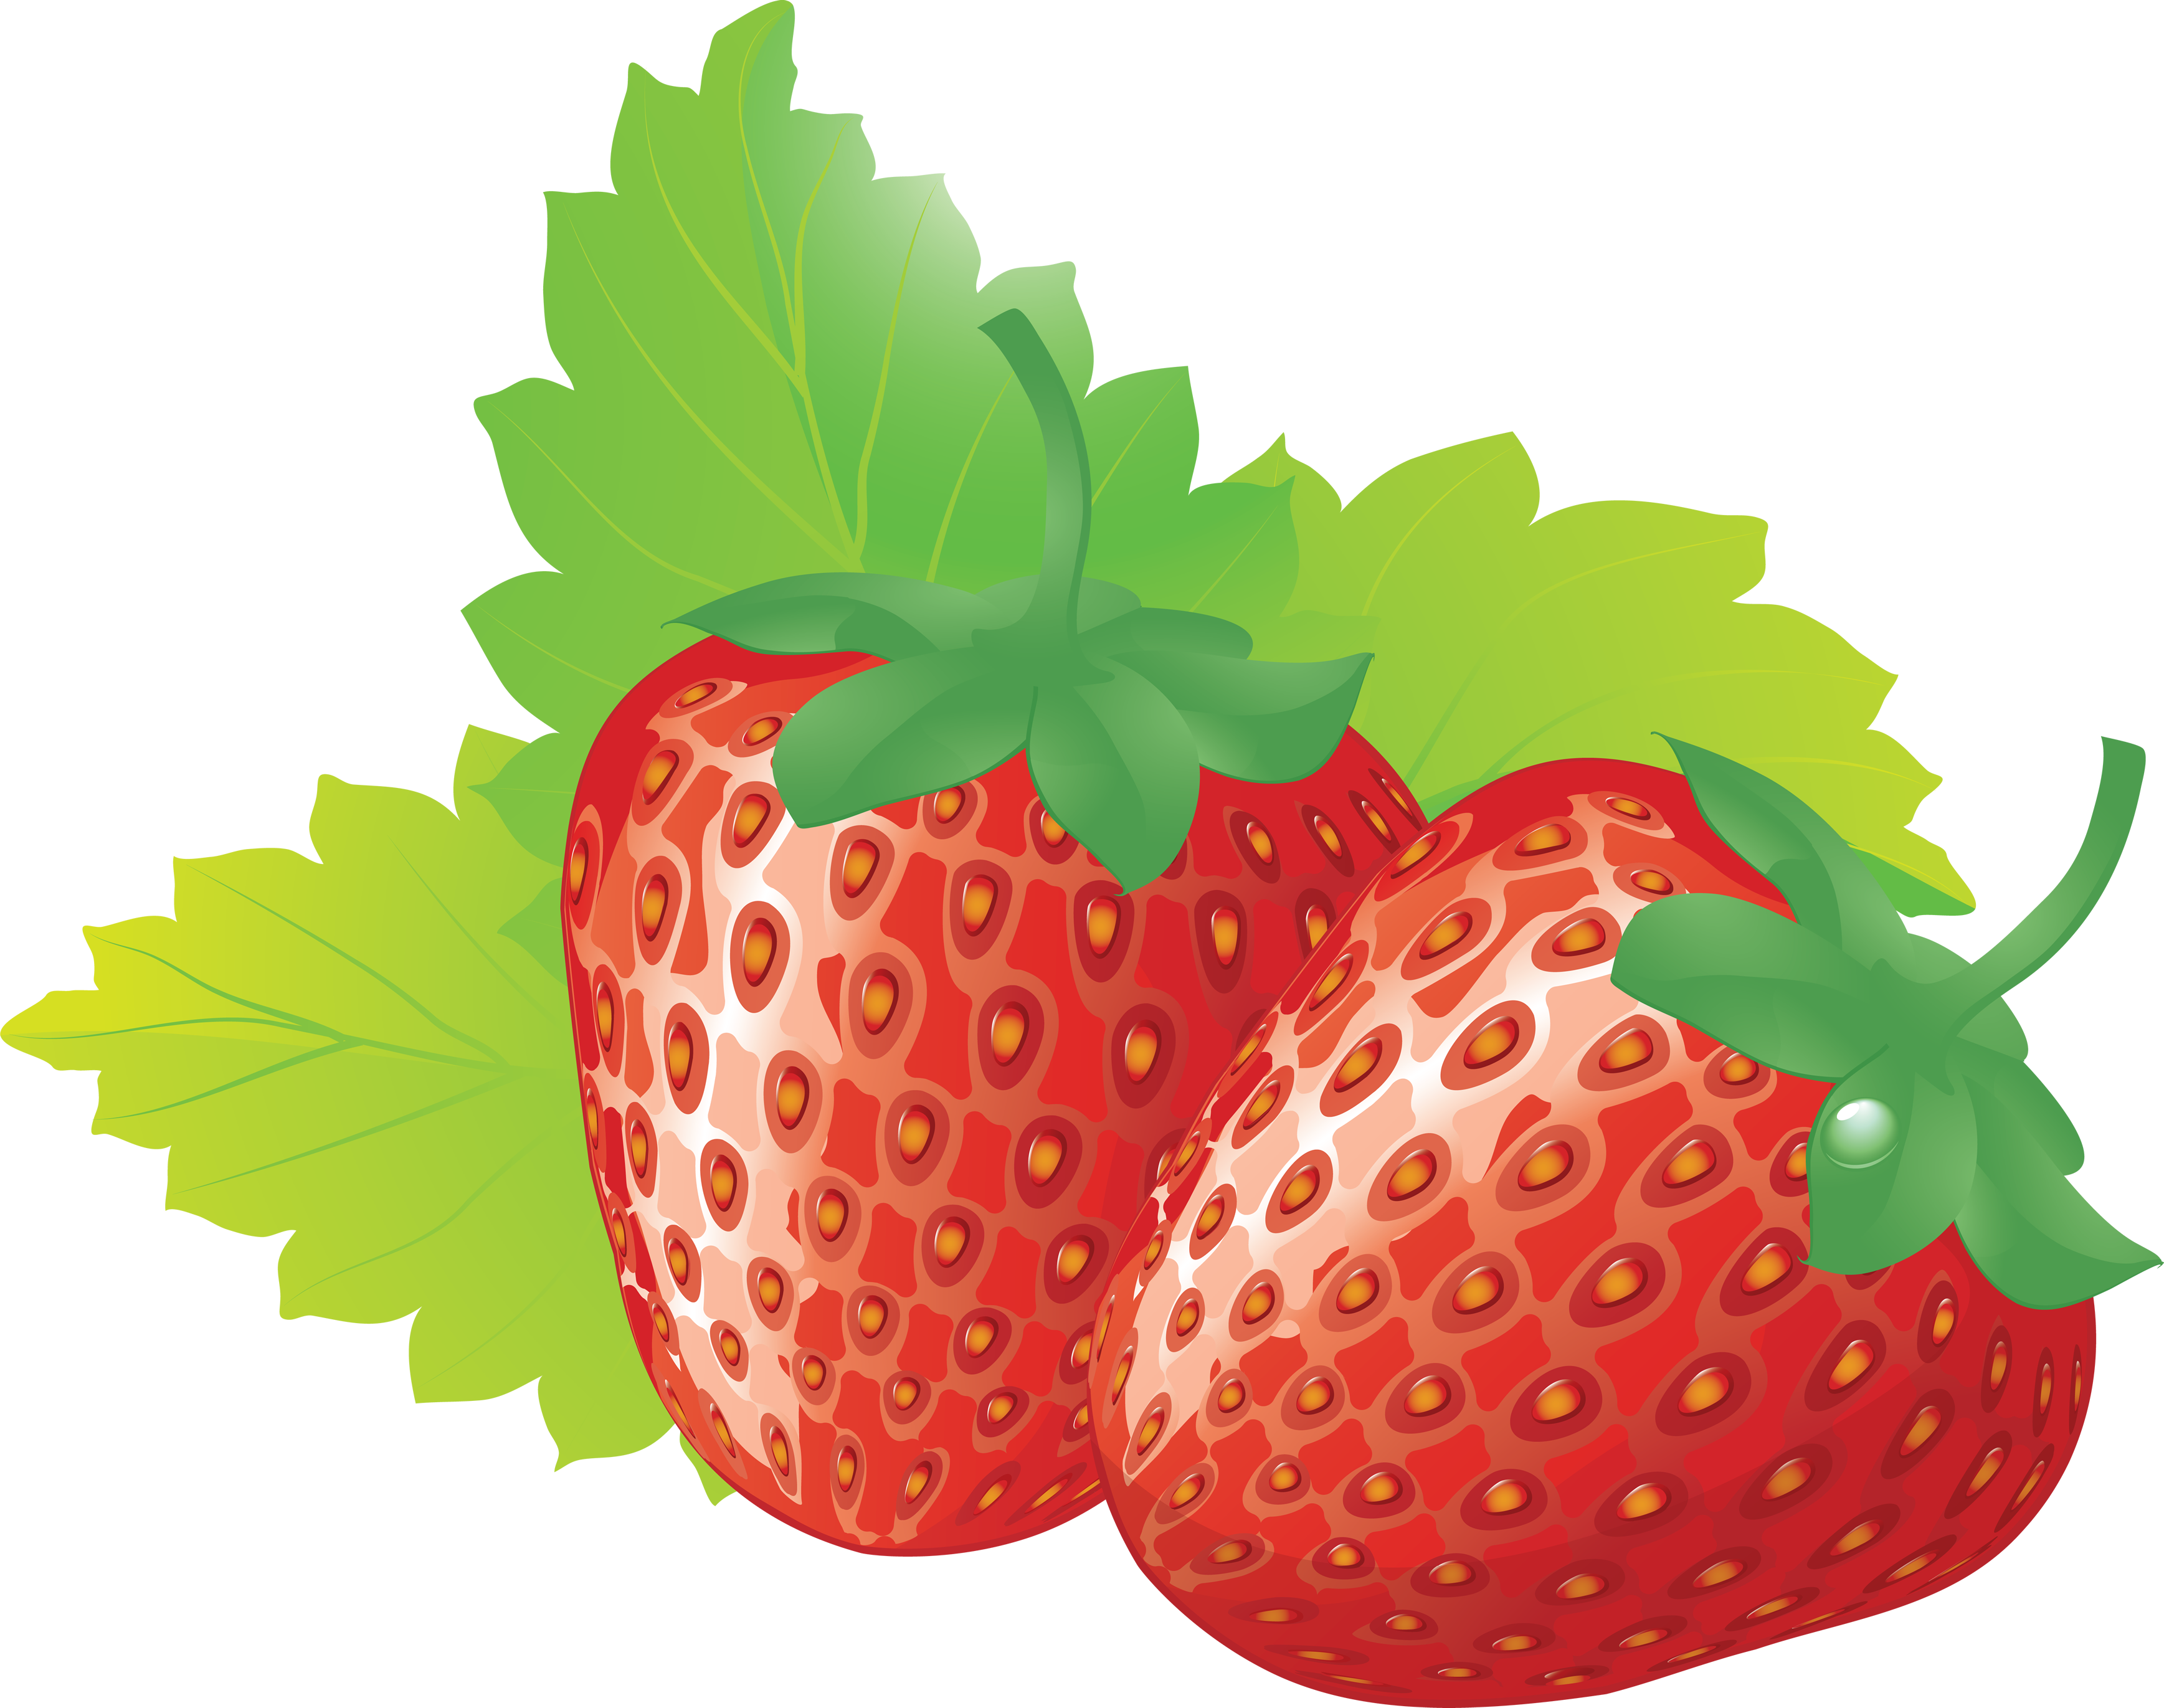 Strawberry png image picture. Berries clipart transparent background